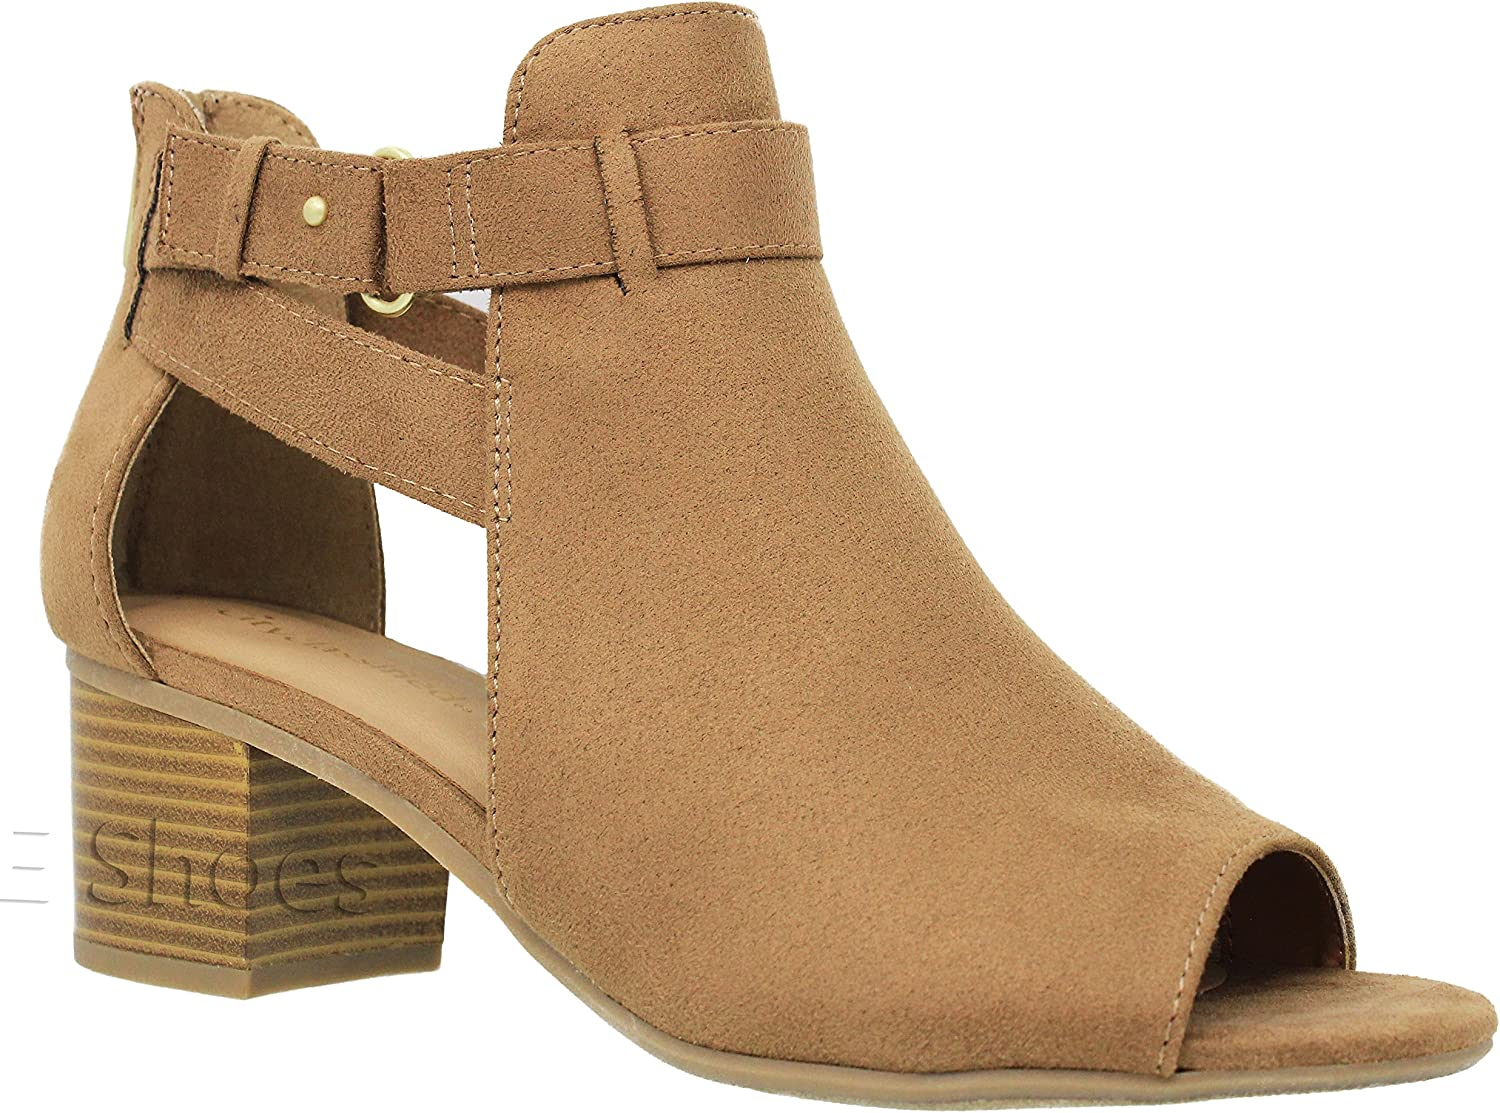 MVE Shoes Womens Stylish Comfortable Open San Out Heeled Mail order cheap Cut Toe Today's only